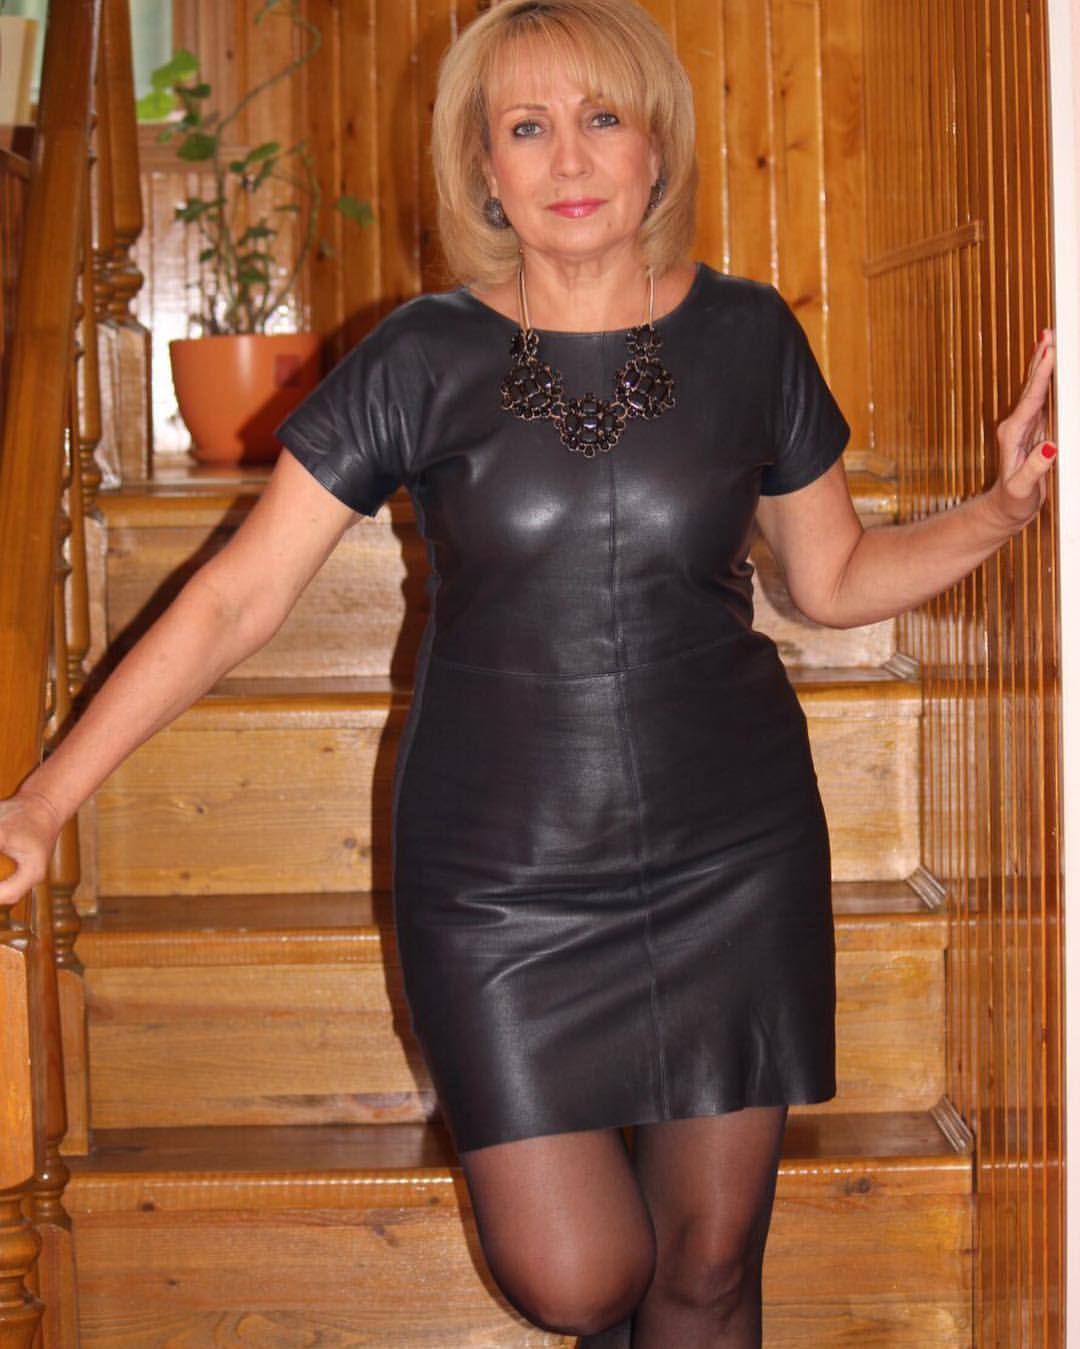 Elegant Mature Lady In Posh Clothes And